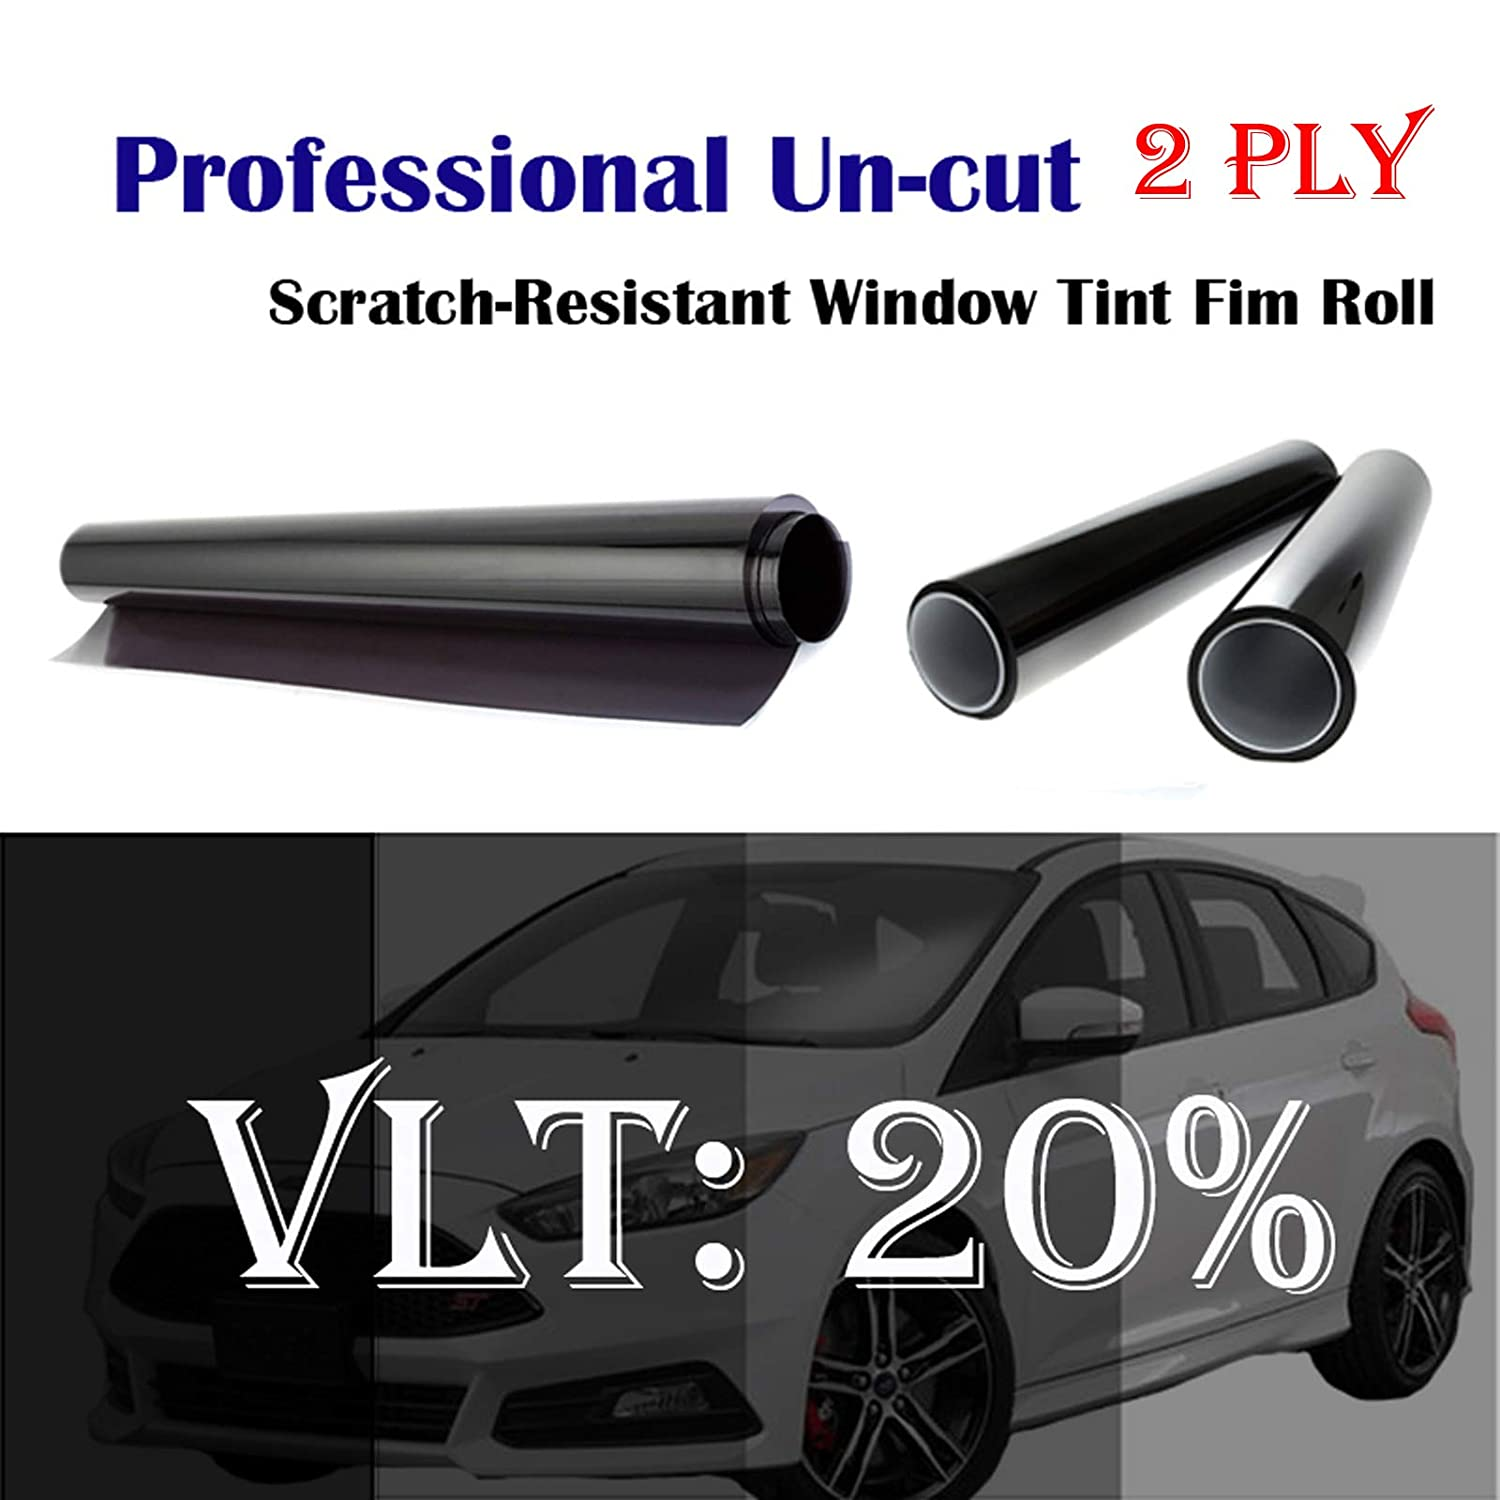 Mkbrother 2PLY 1.8 mil Premium 20% VLT 60 in x 100 Ft (60 x 1200 Inch) Feet Uncut Roll Window Tint Film